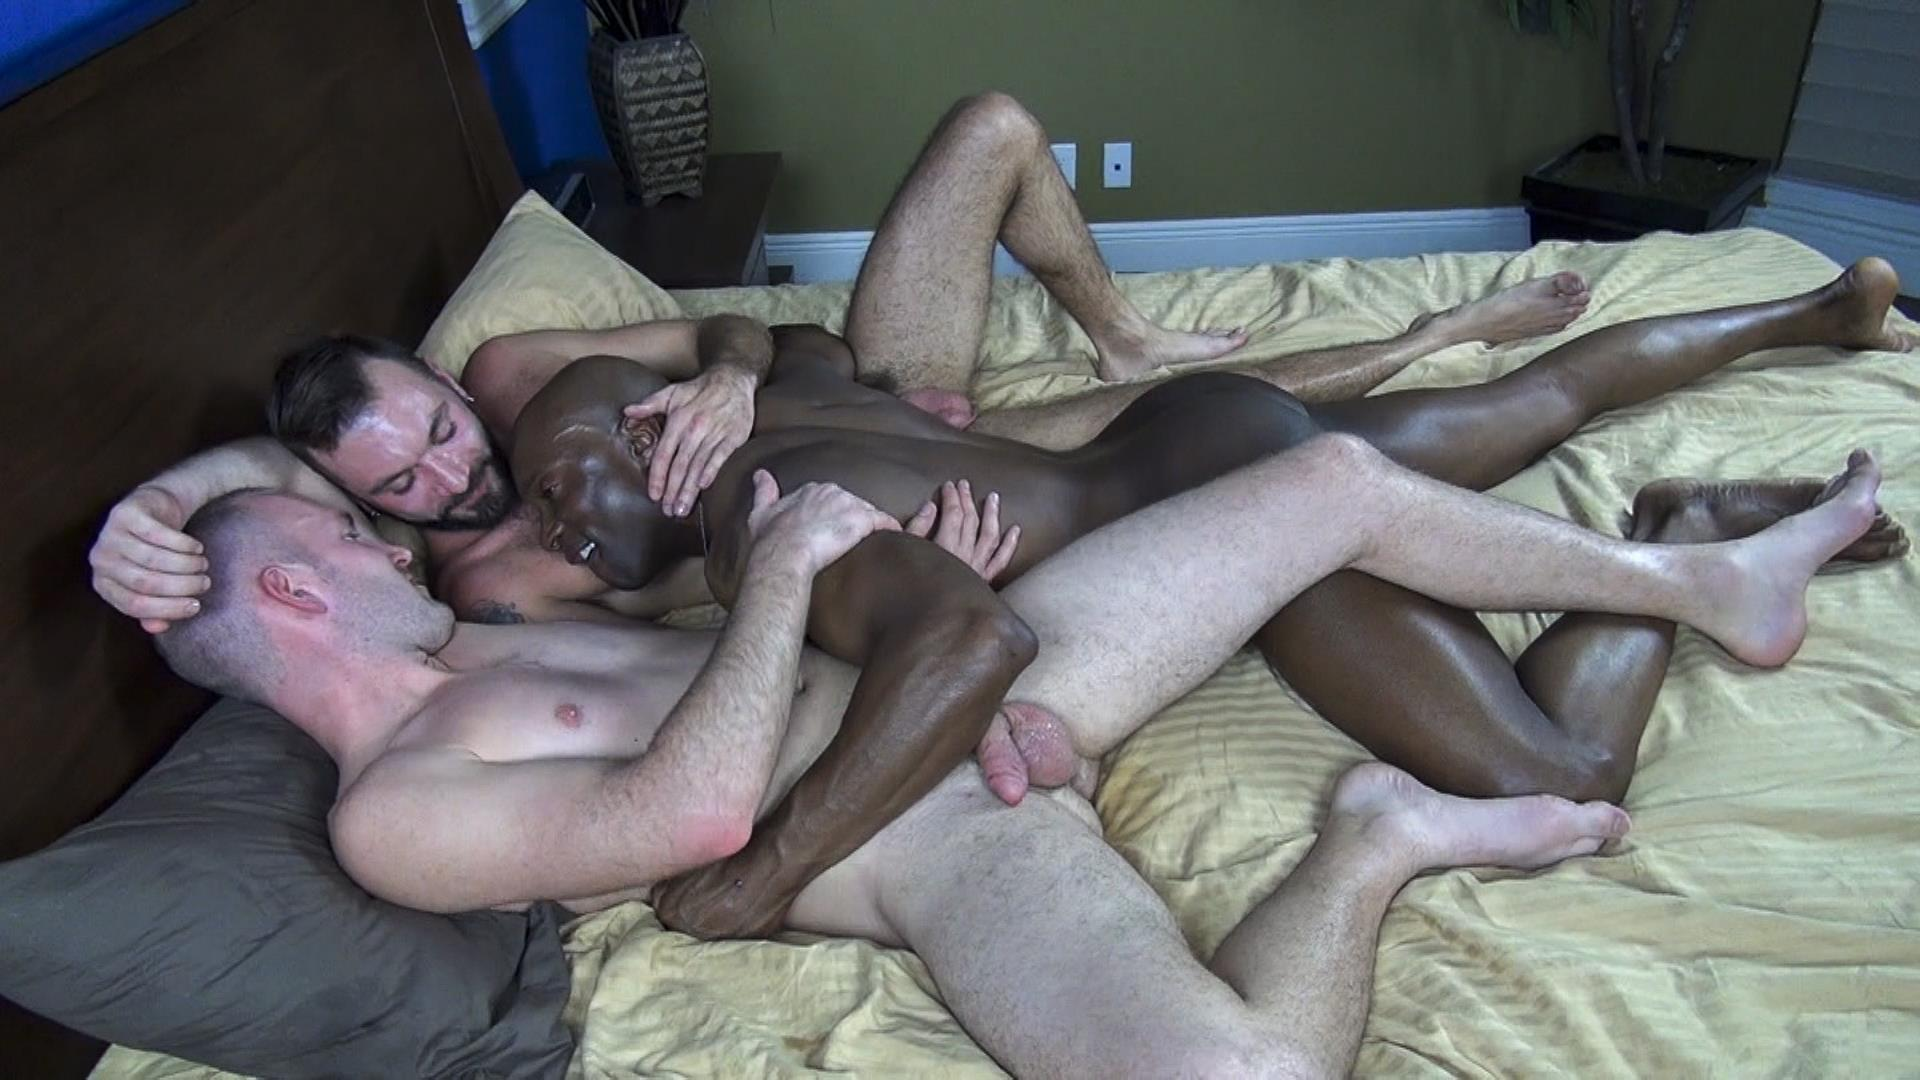 Raw-Fuck-Club-Ethan-Palmer-and-Champ-Robinson-and-Trit-Tyler-Bareback-Interrical-Amateur-Gay-Porn-10 Champ Robinson Shares His Big Black Dick With 2 White Guys